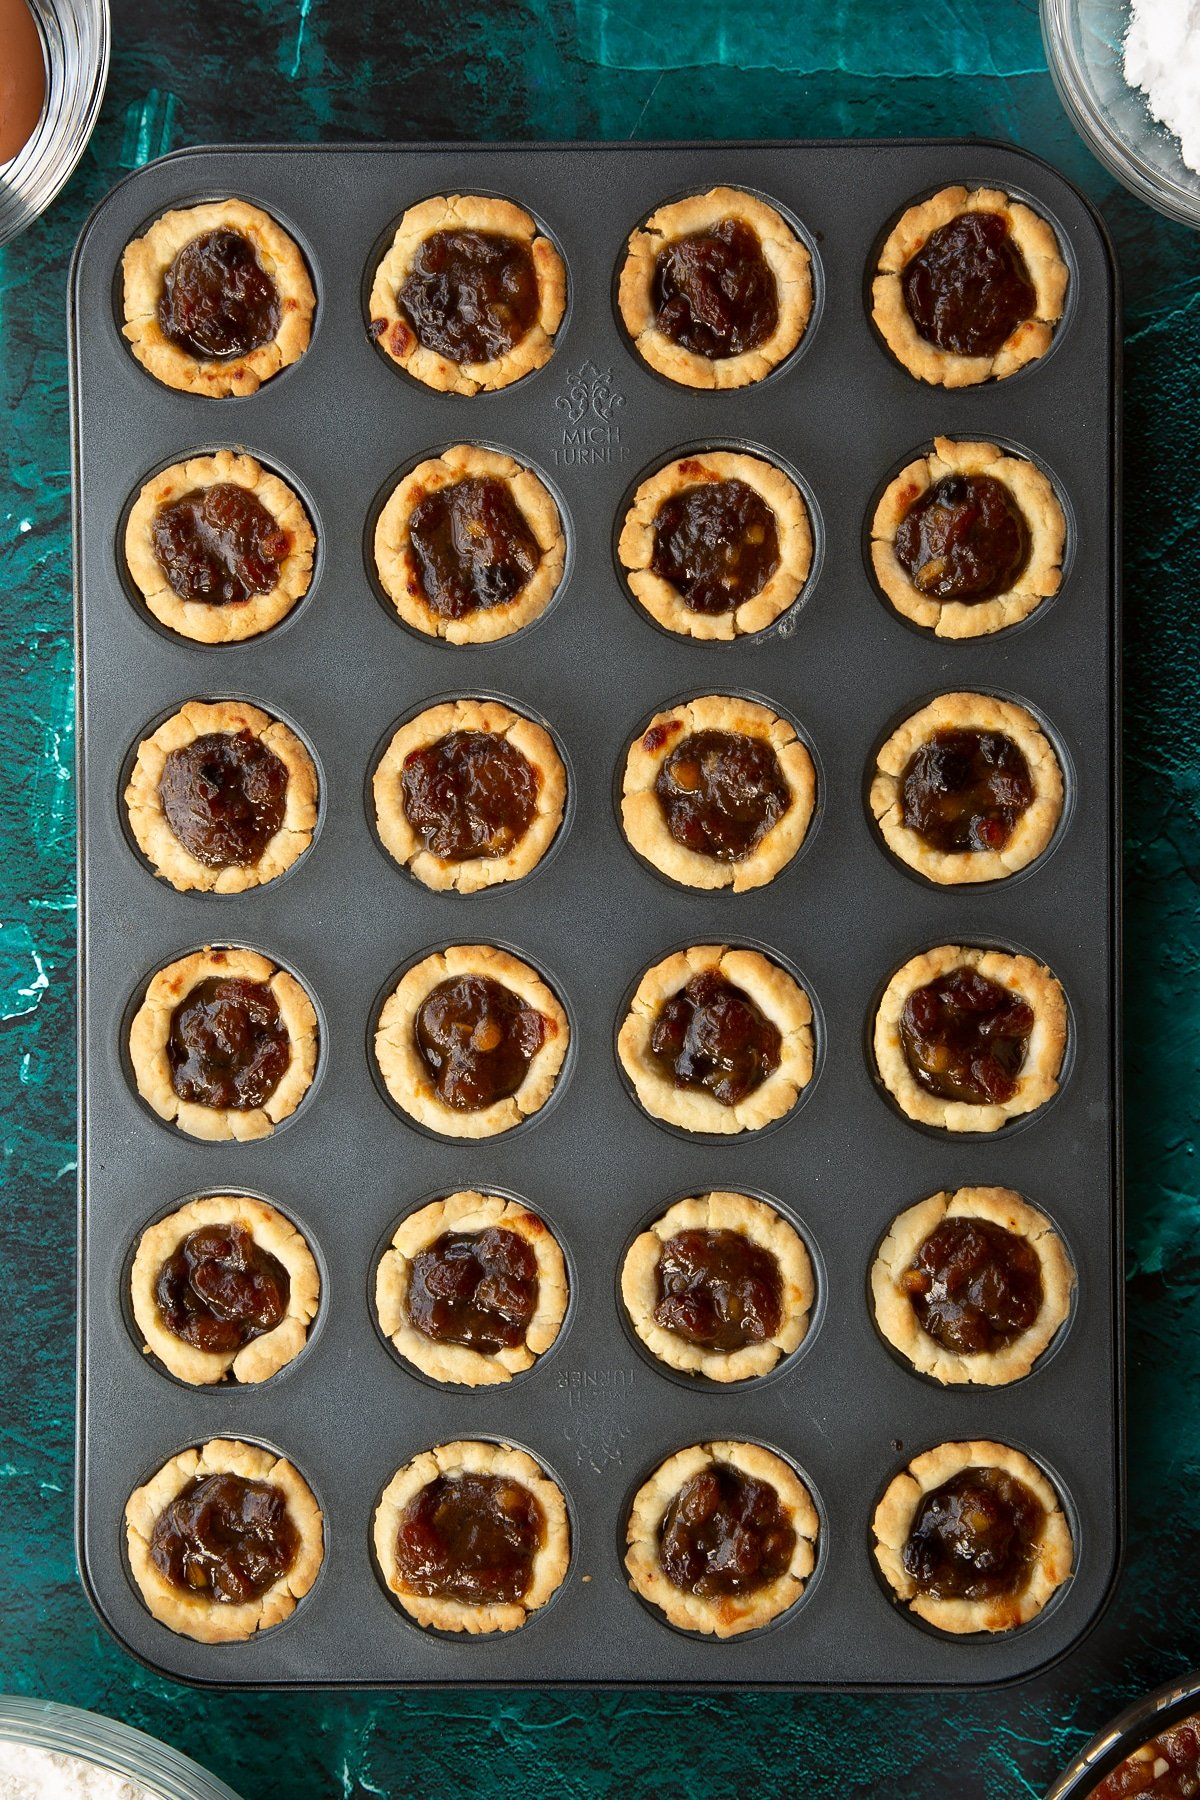 Freshly baked mini mince pies in a mini muffin tray. Ingredients to make mini mince pies surround the tray.